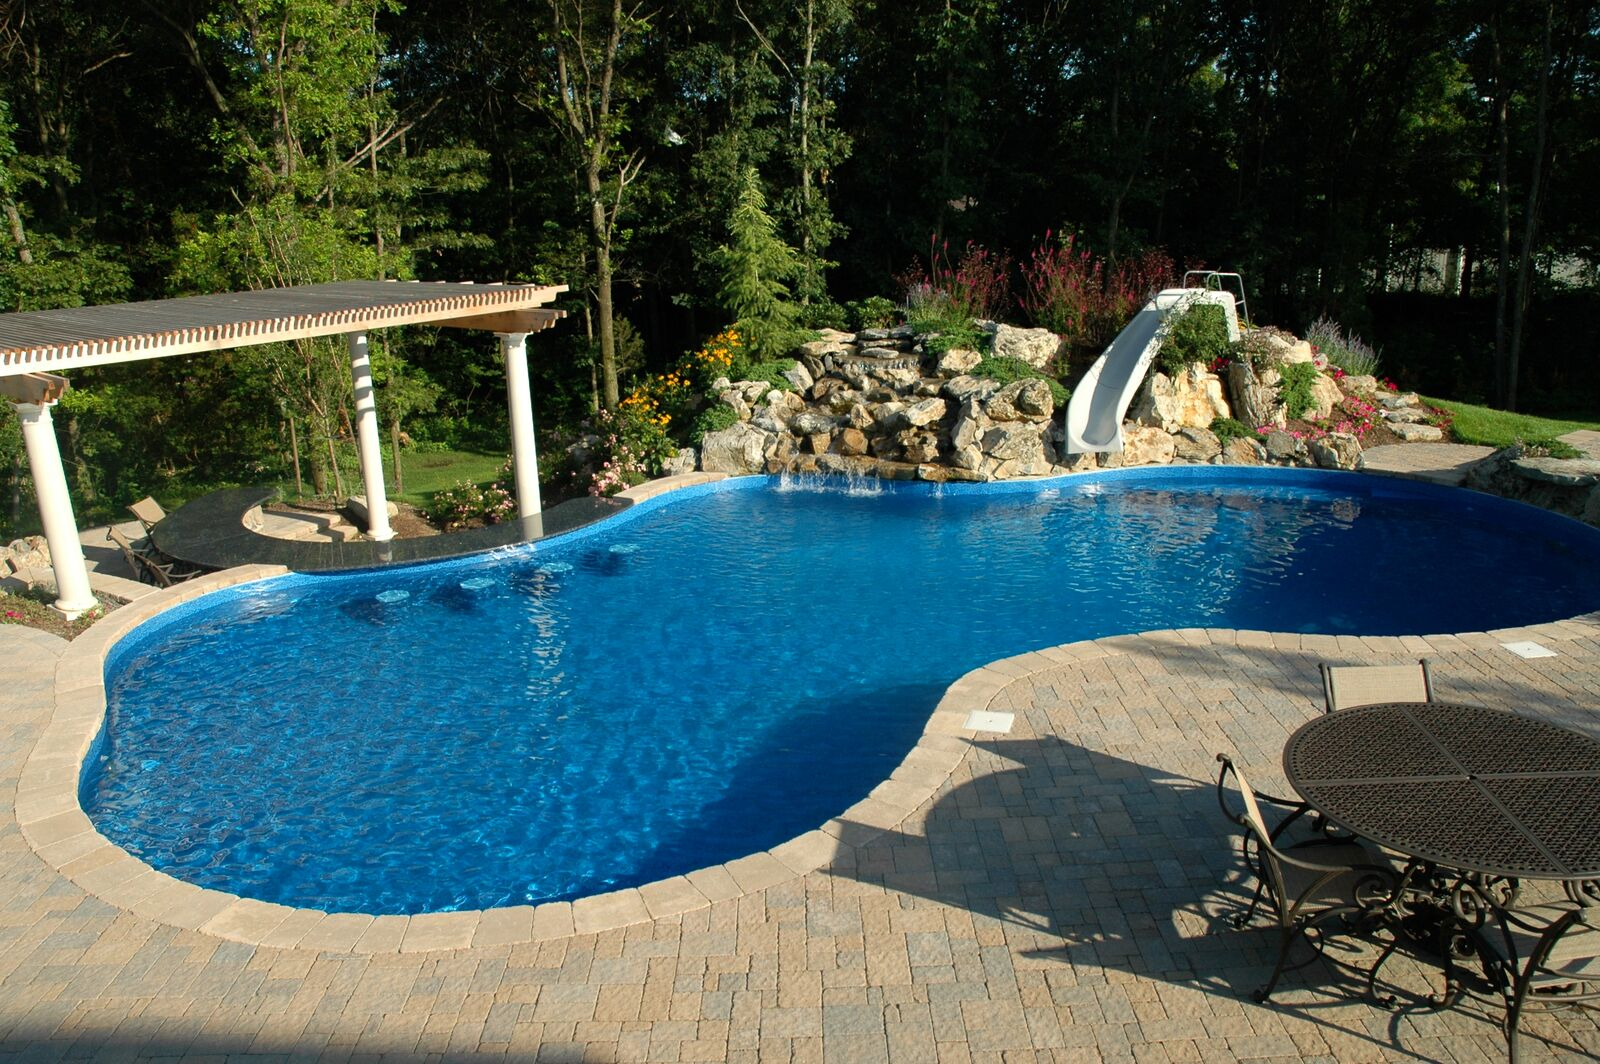 Pool Surrounds The Deck And Patio Company